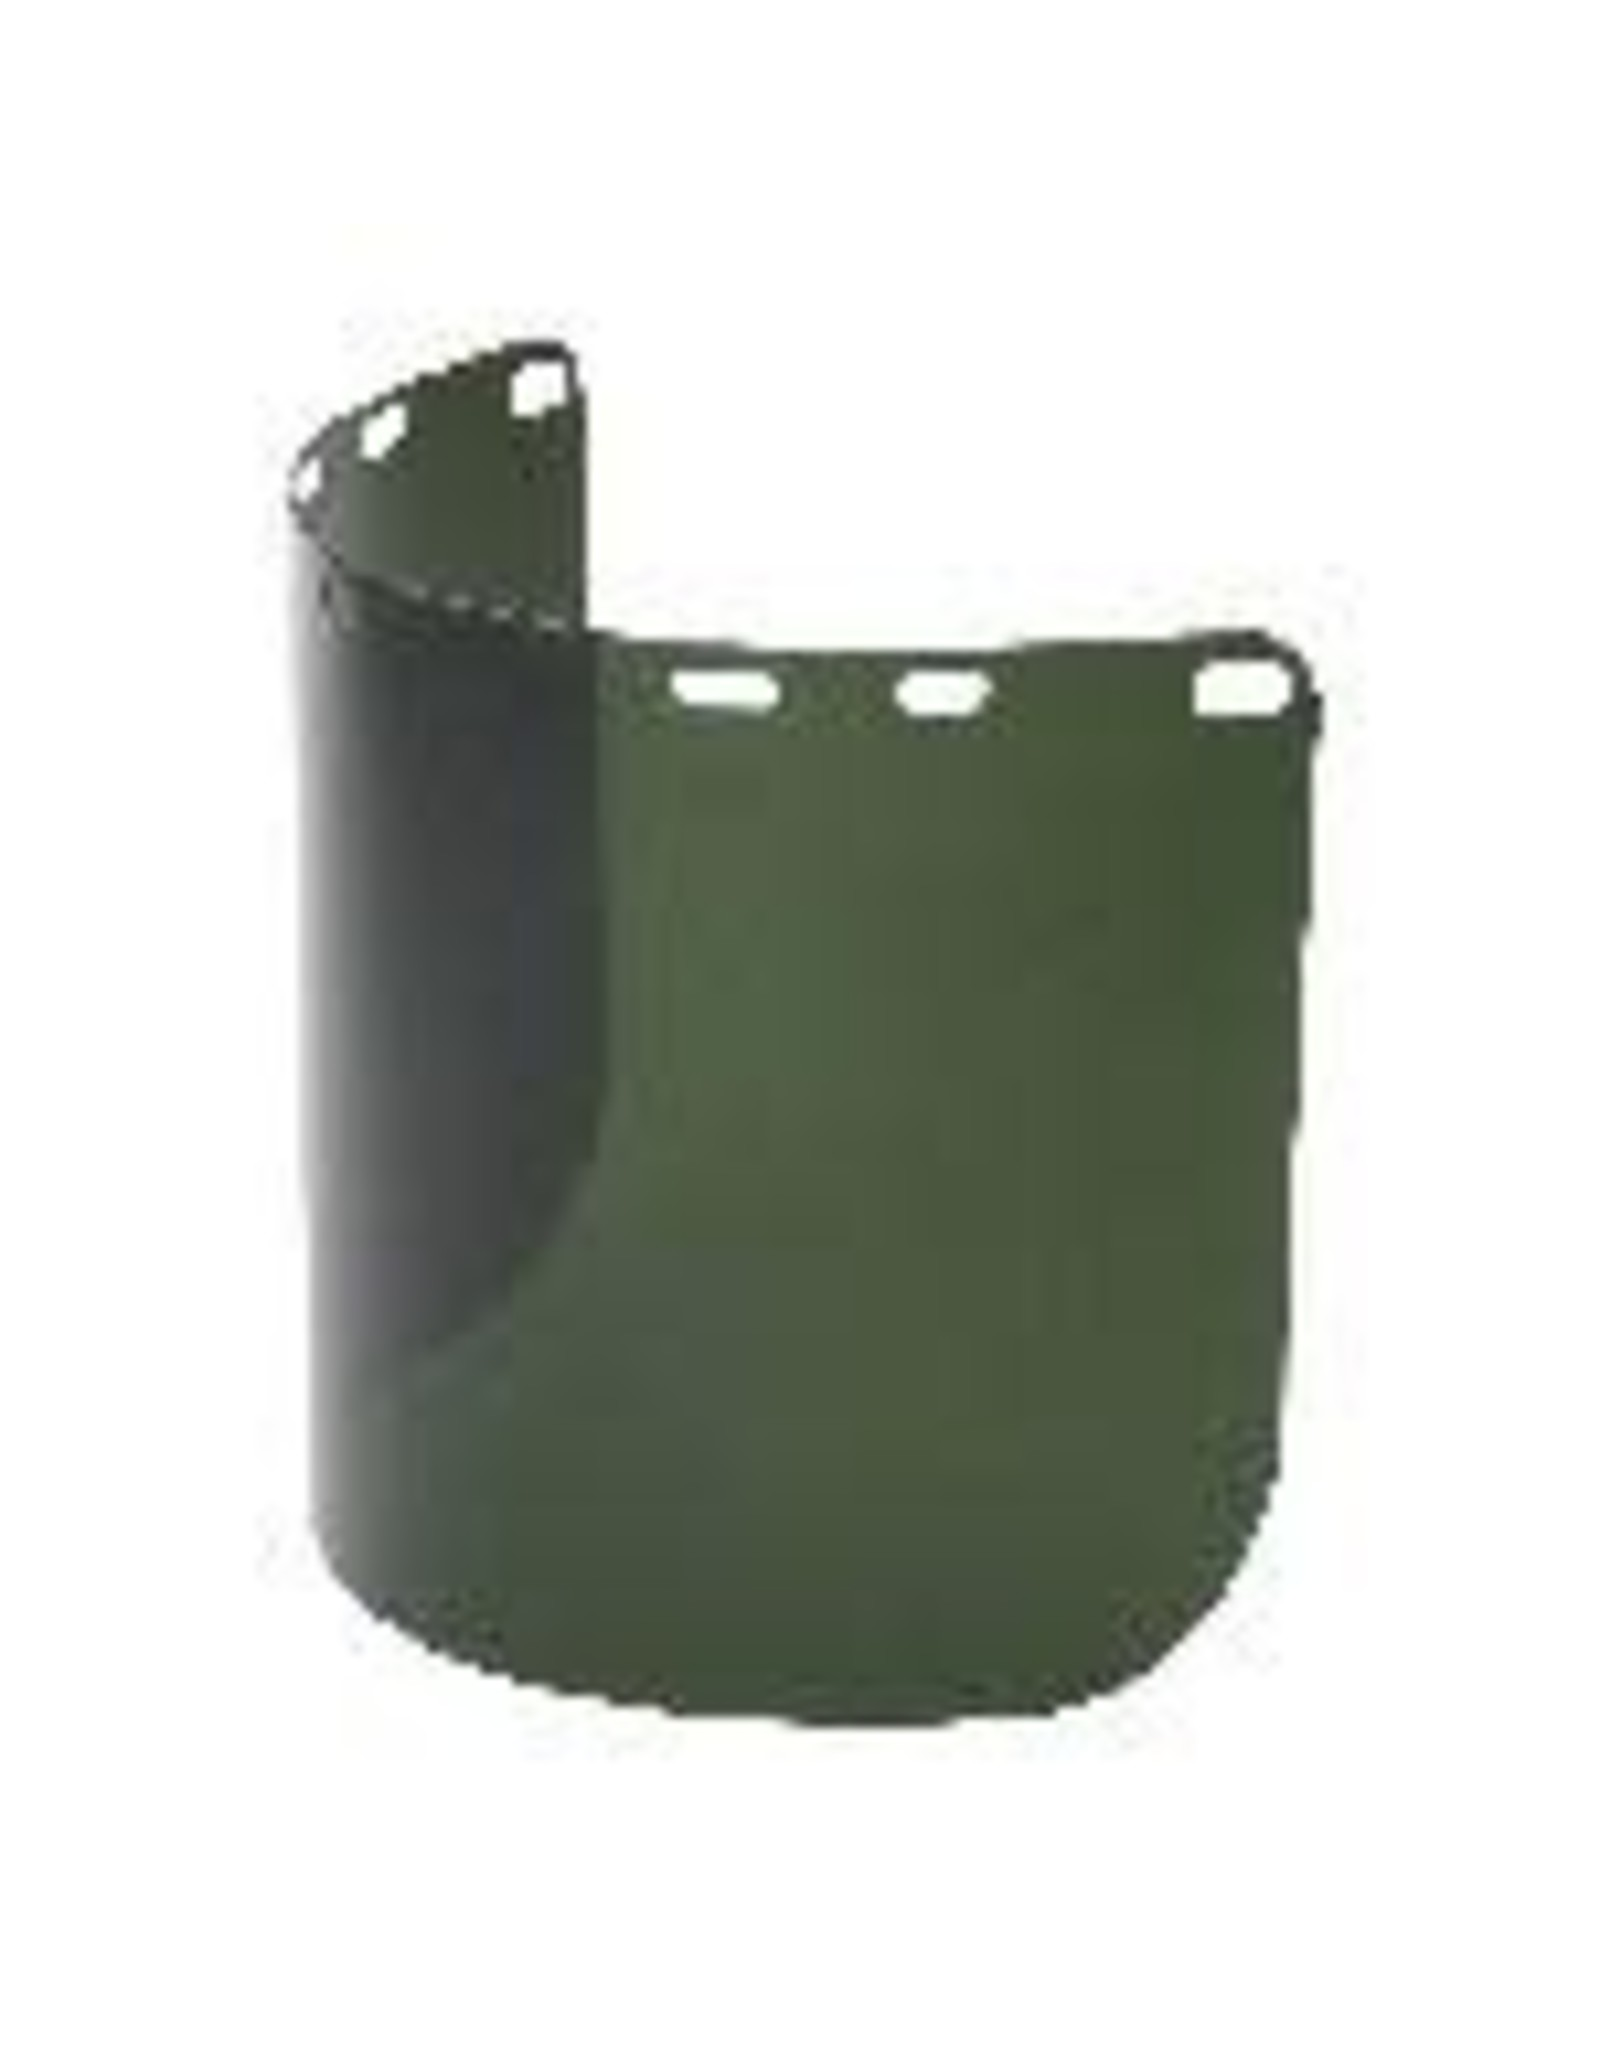 North Faceshield Formed 8 IN X 15 IN Green